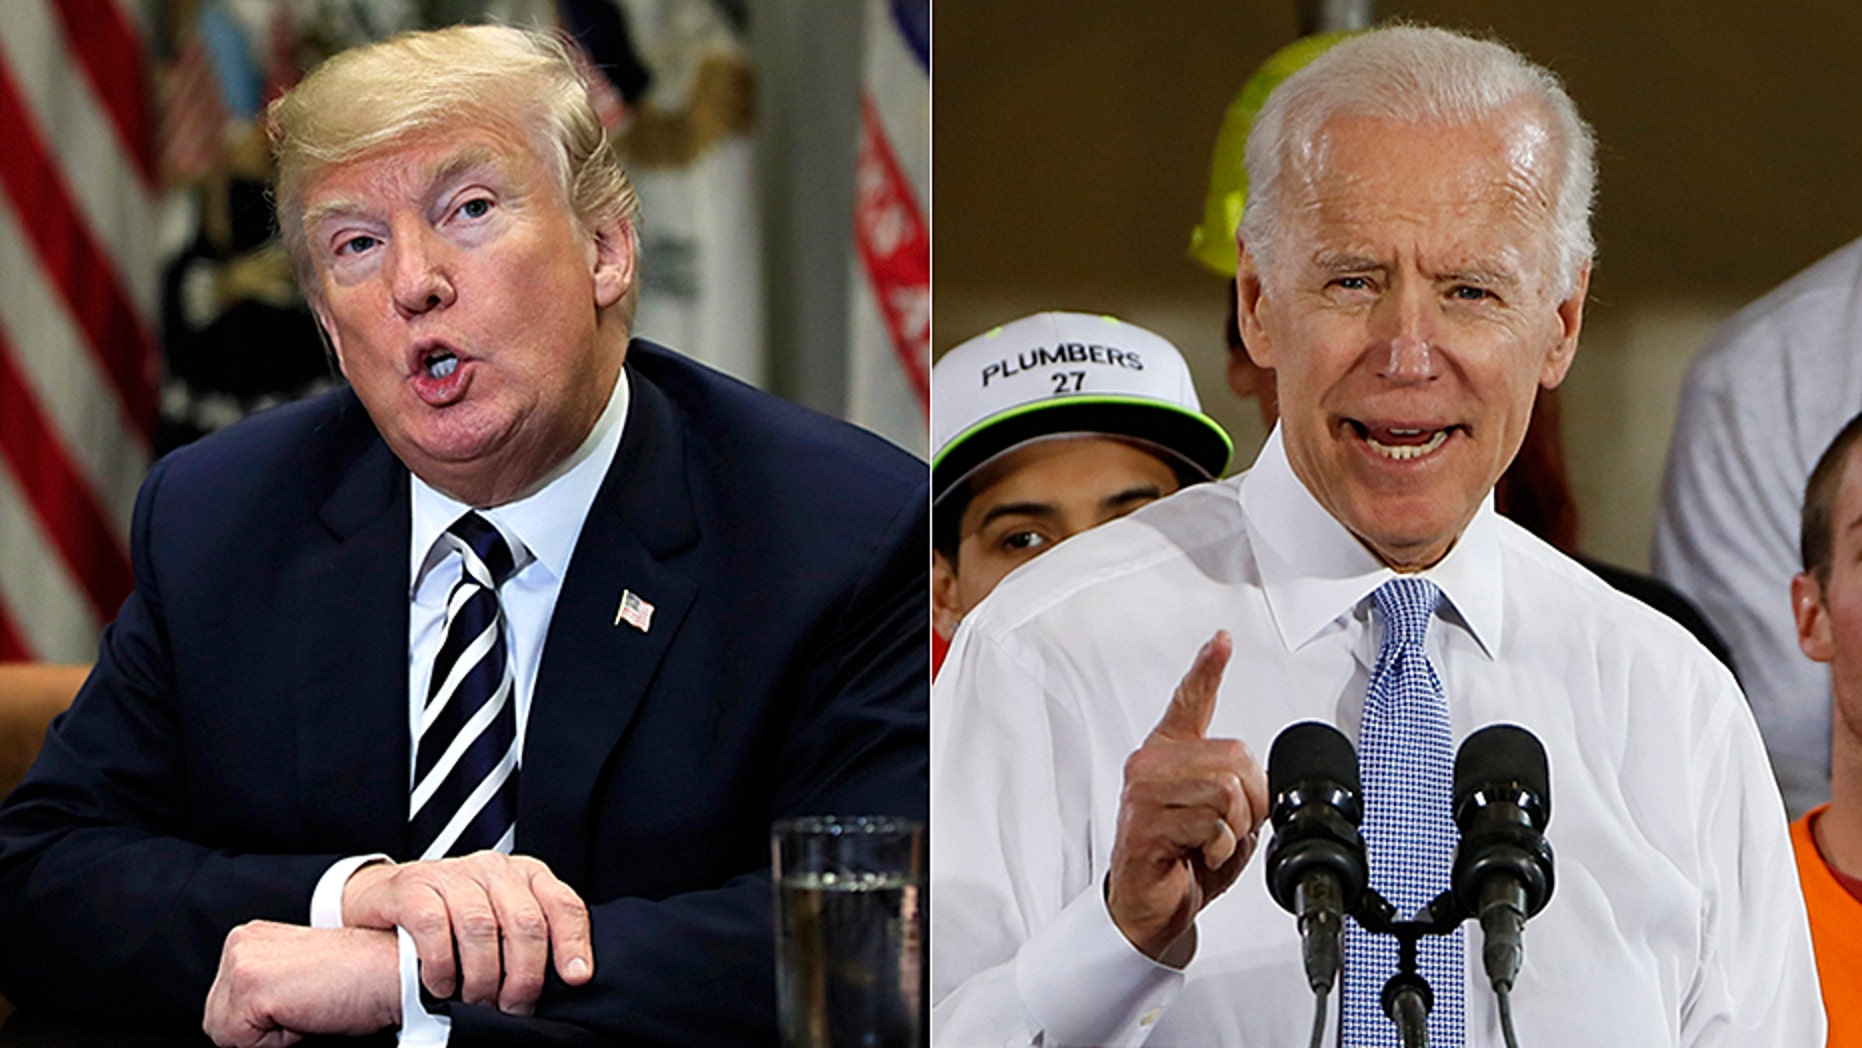 President Trump and Joe Biden sound like they want to square off in the boxing ring even more than in the 2020 election.